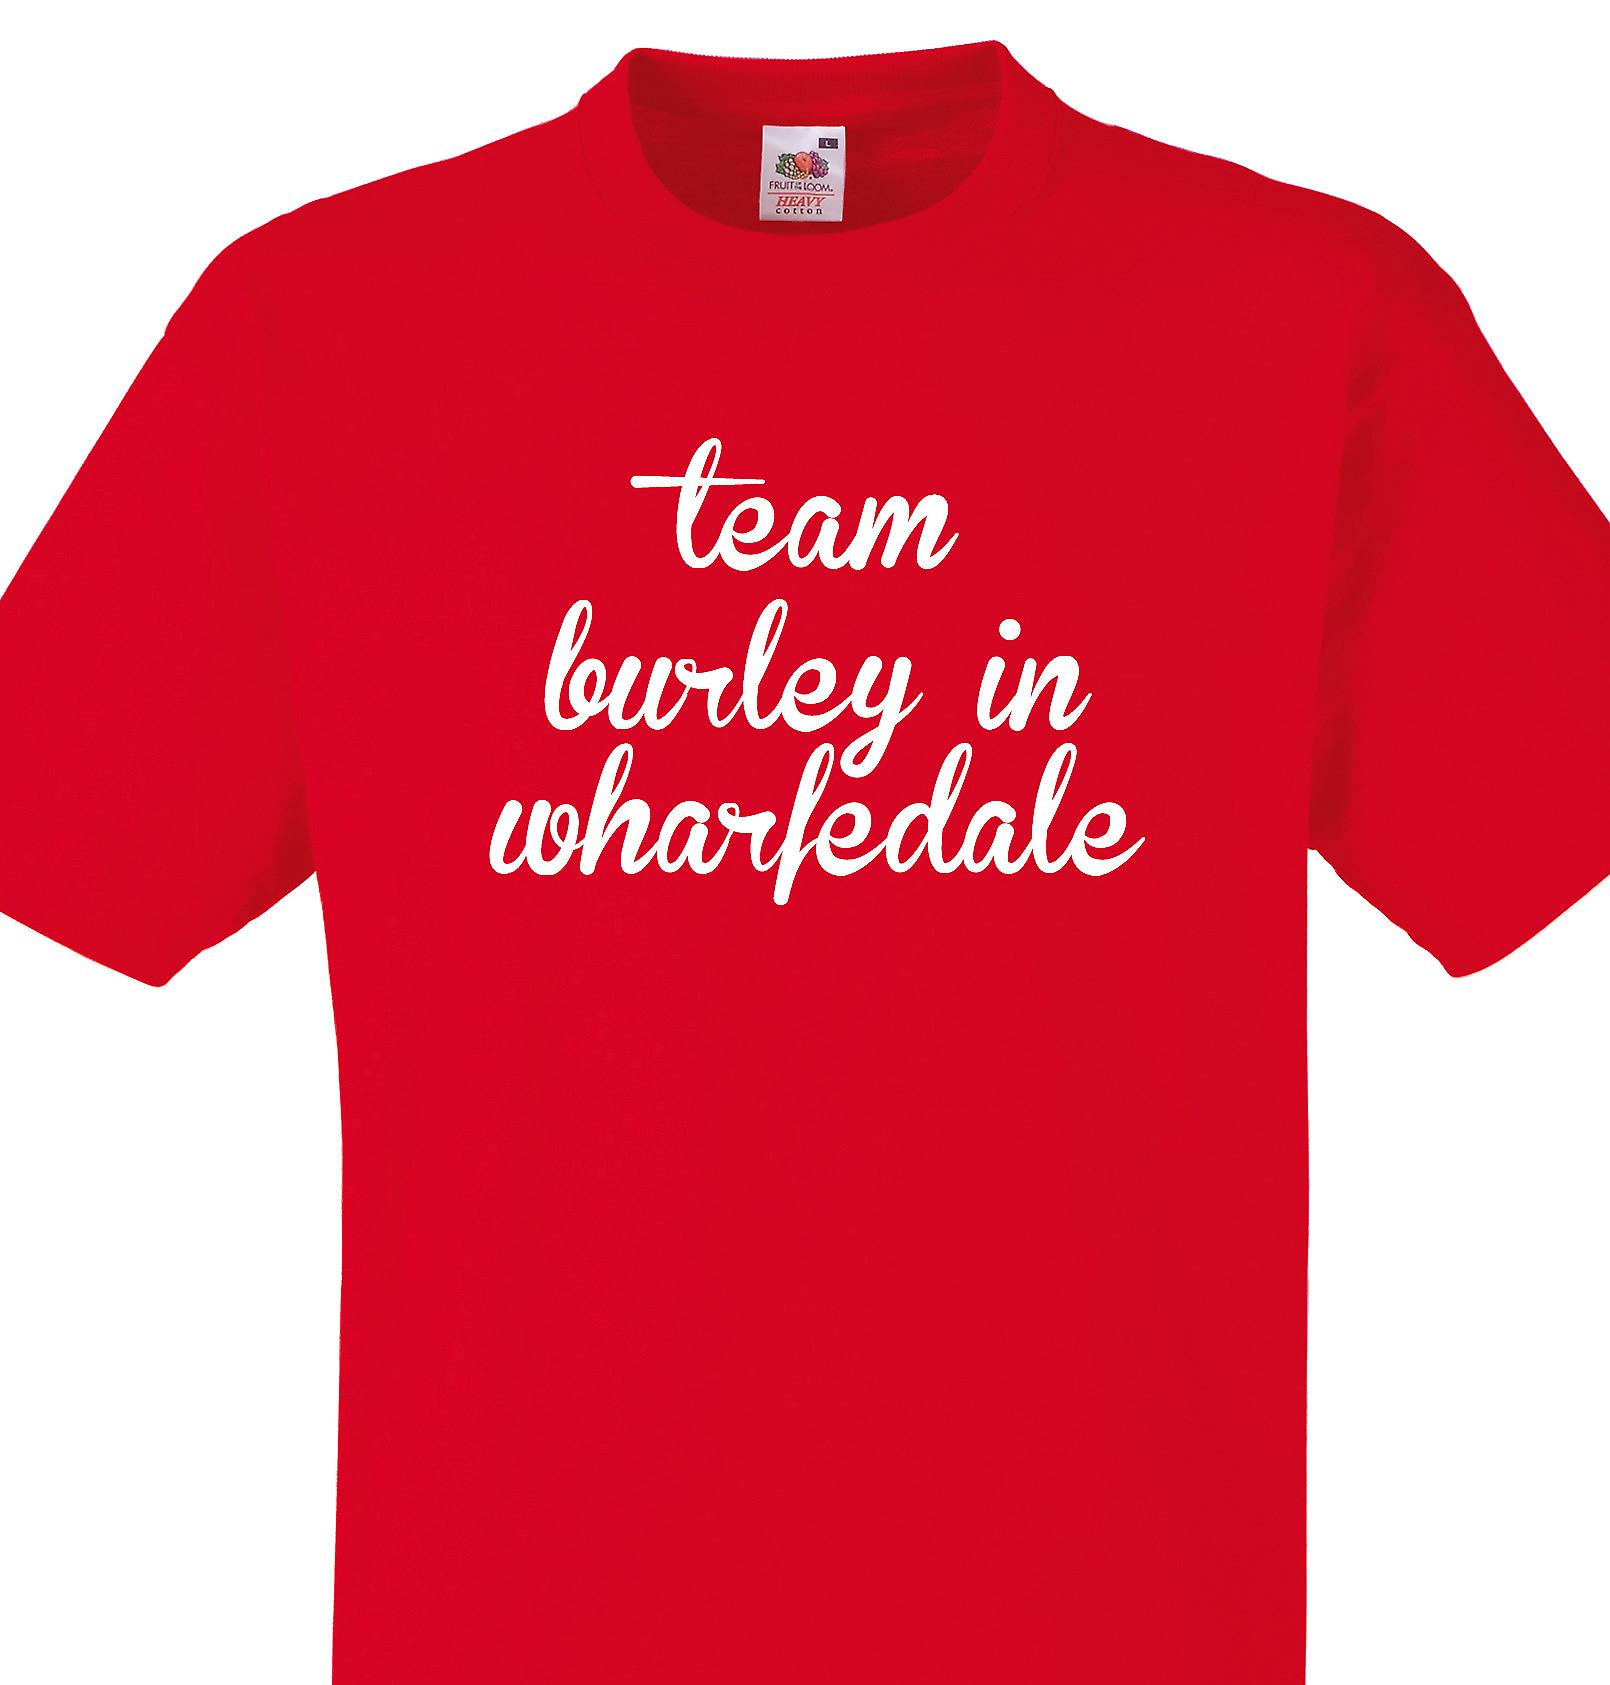 Team Burley in wharfedale Red T shirt